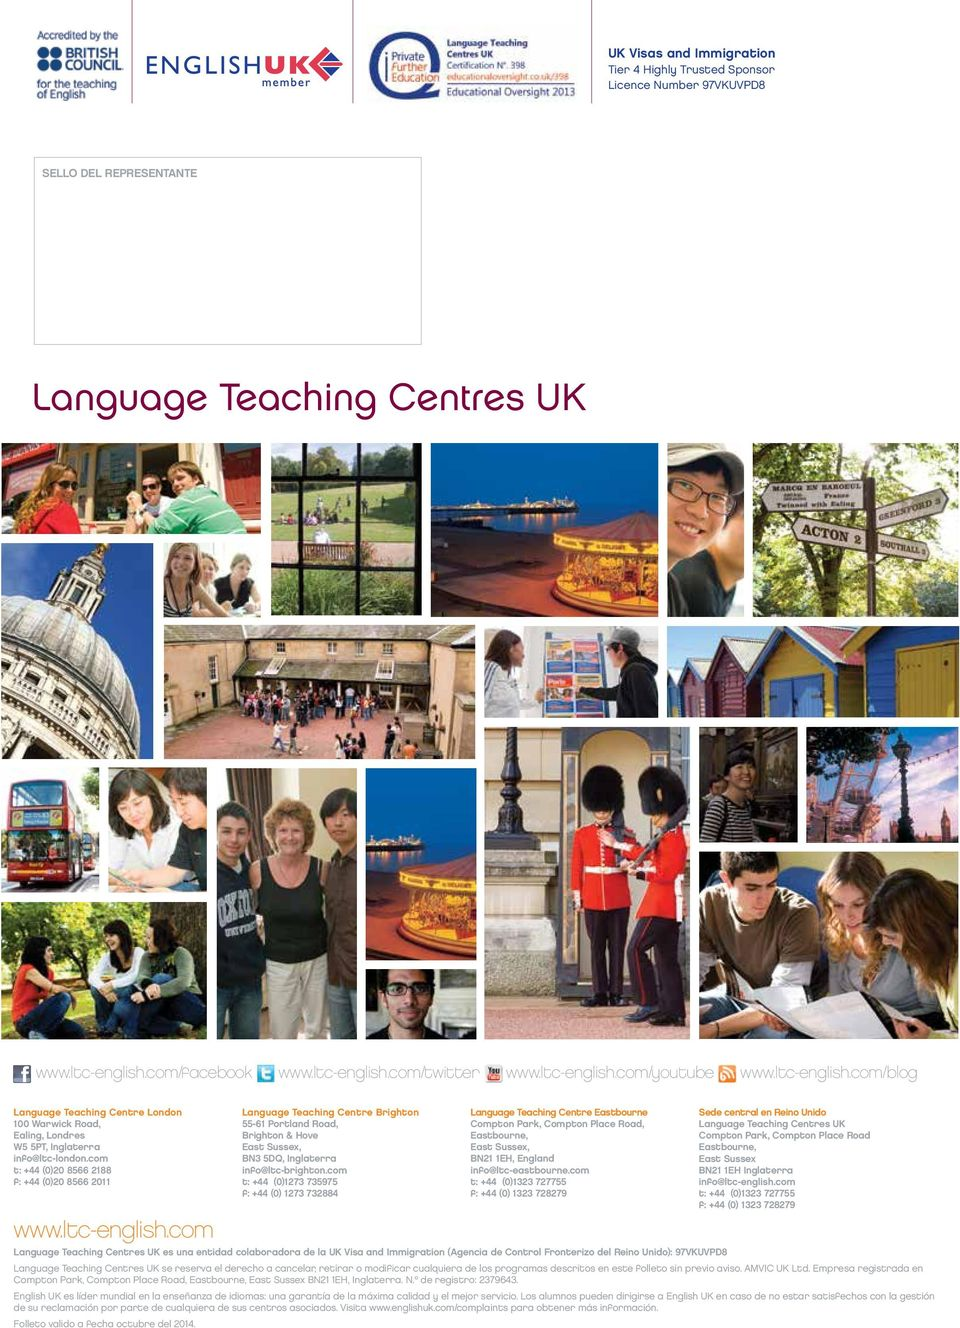 com t: +44 (0)20 8566 2188 f: +44 (0)20 8566 2011 www.ltc-english.com Language Teaching Centre Brighton 55-61 Portland Road, Brighton & Hove East Sussex, BN3 5DQ, Inglaterra info@ltc-brighton.